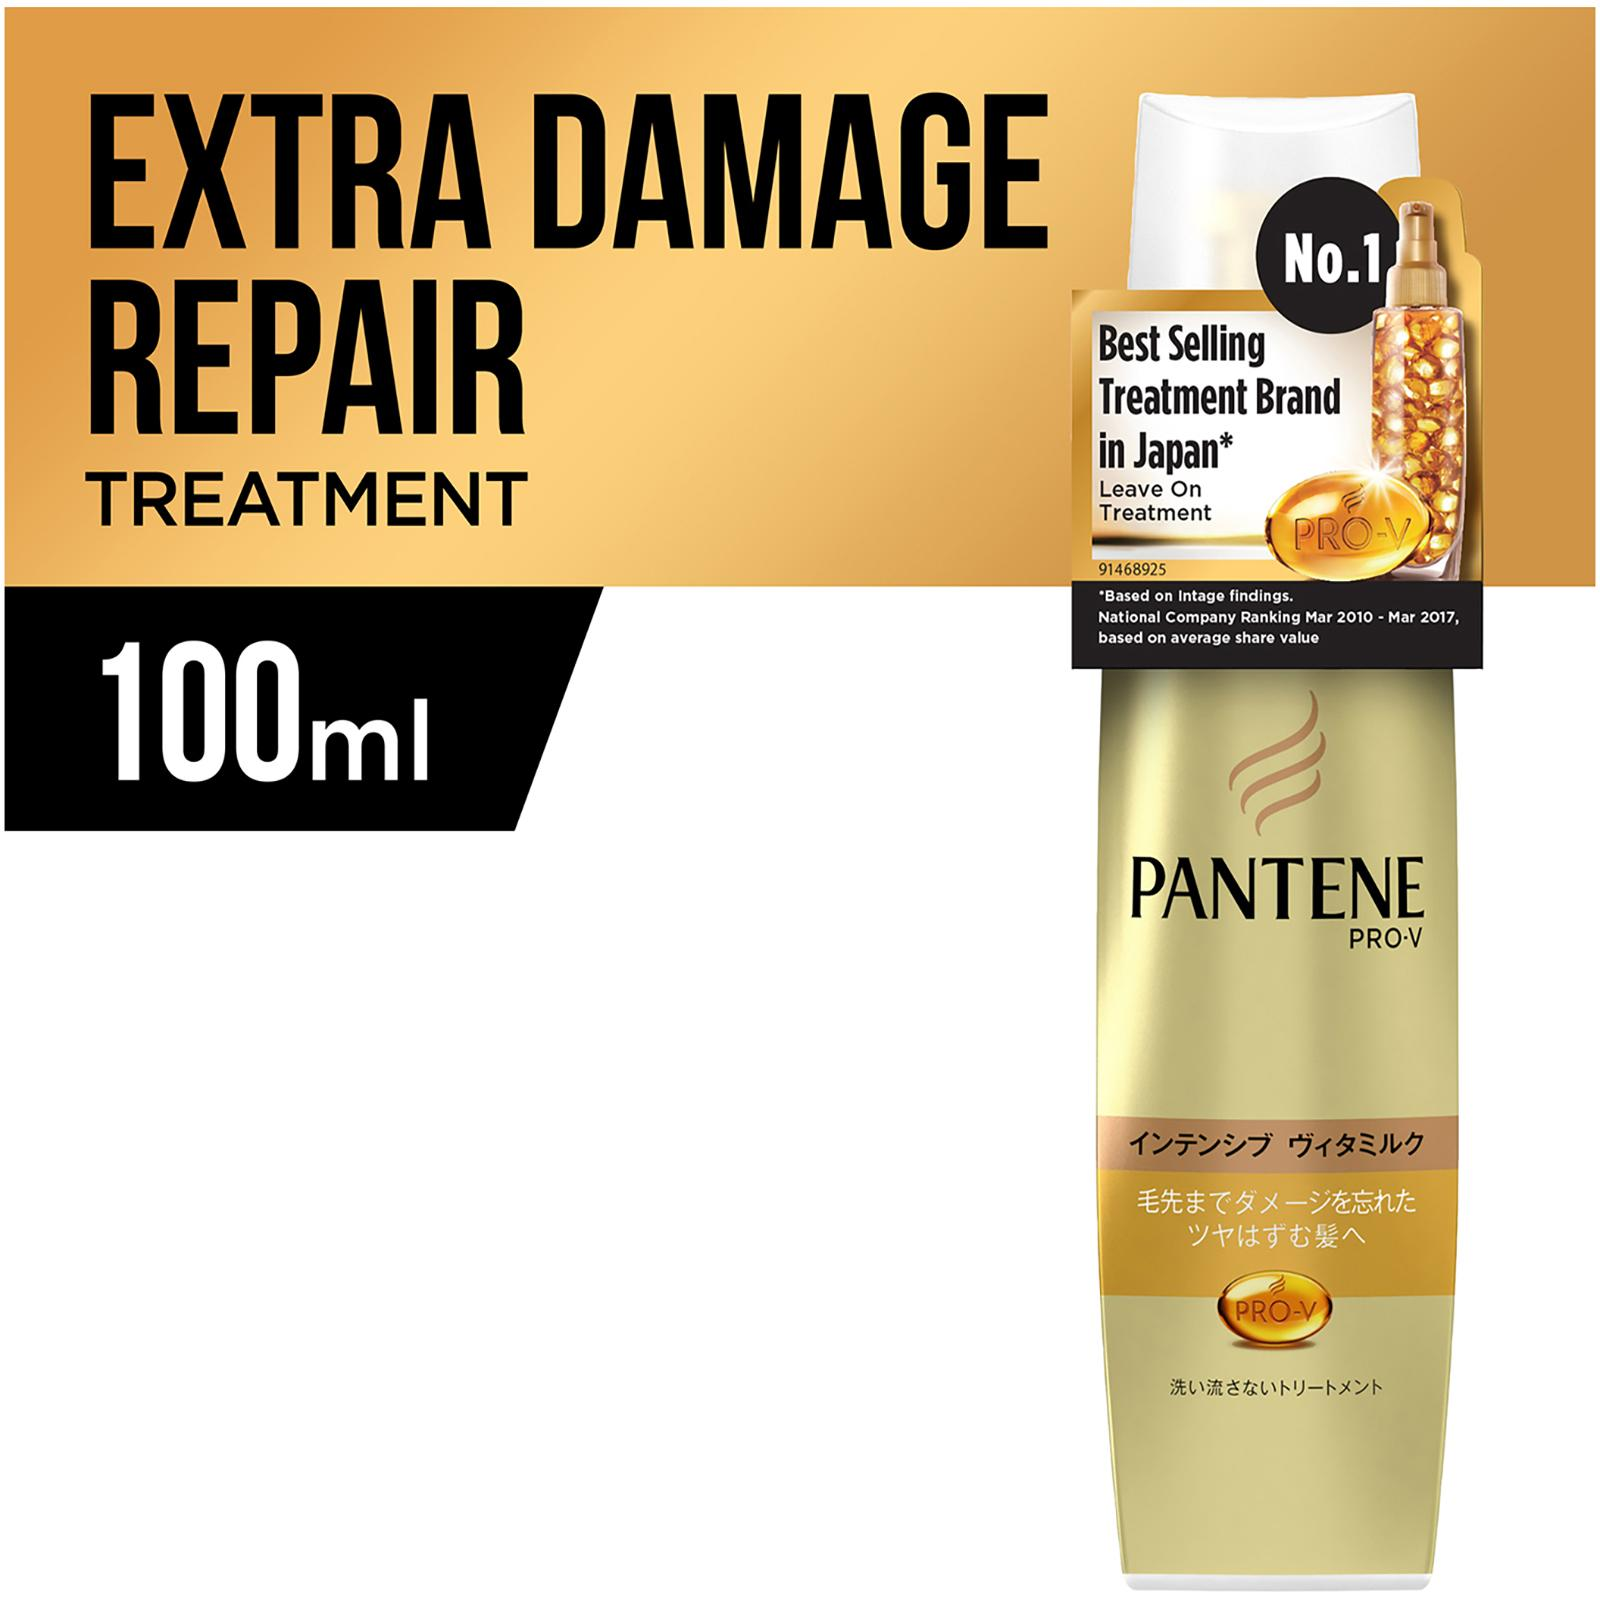 Pantene Extra Damage Care Shampoo & Treatment Conditioner